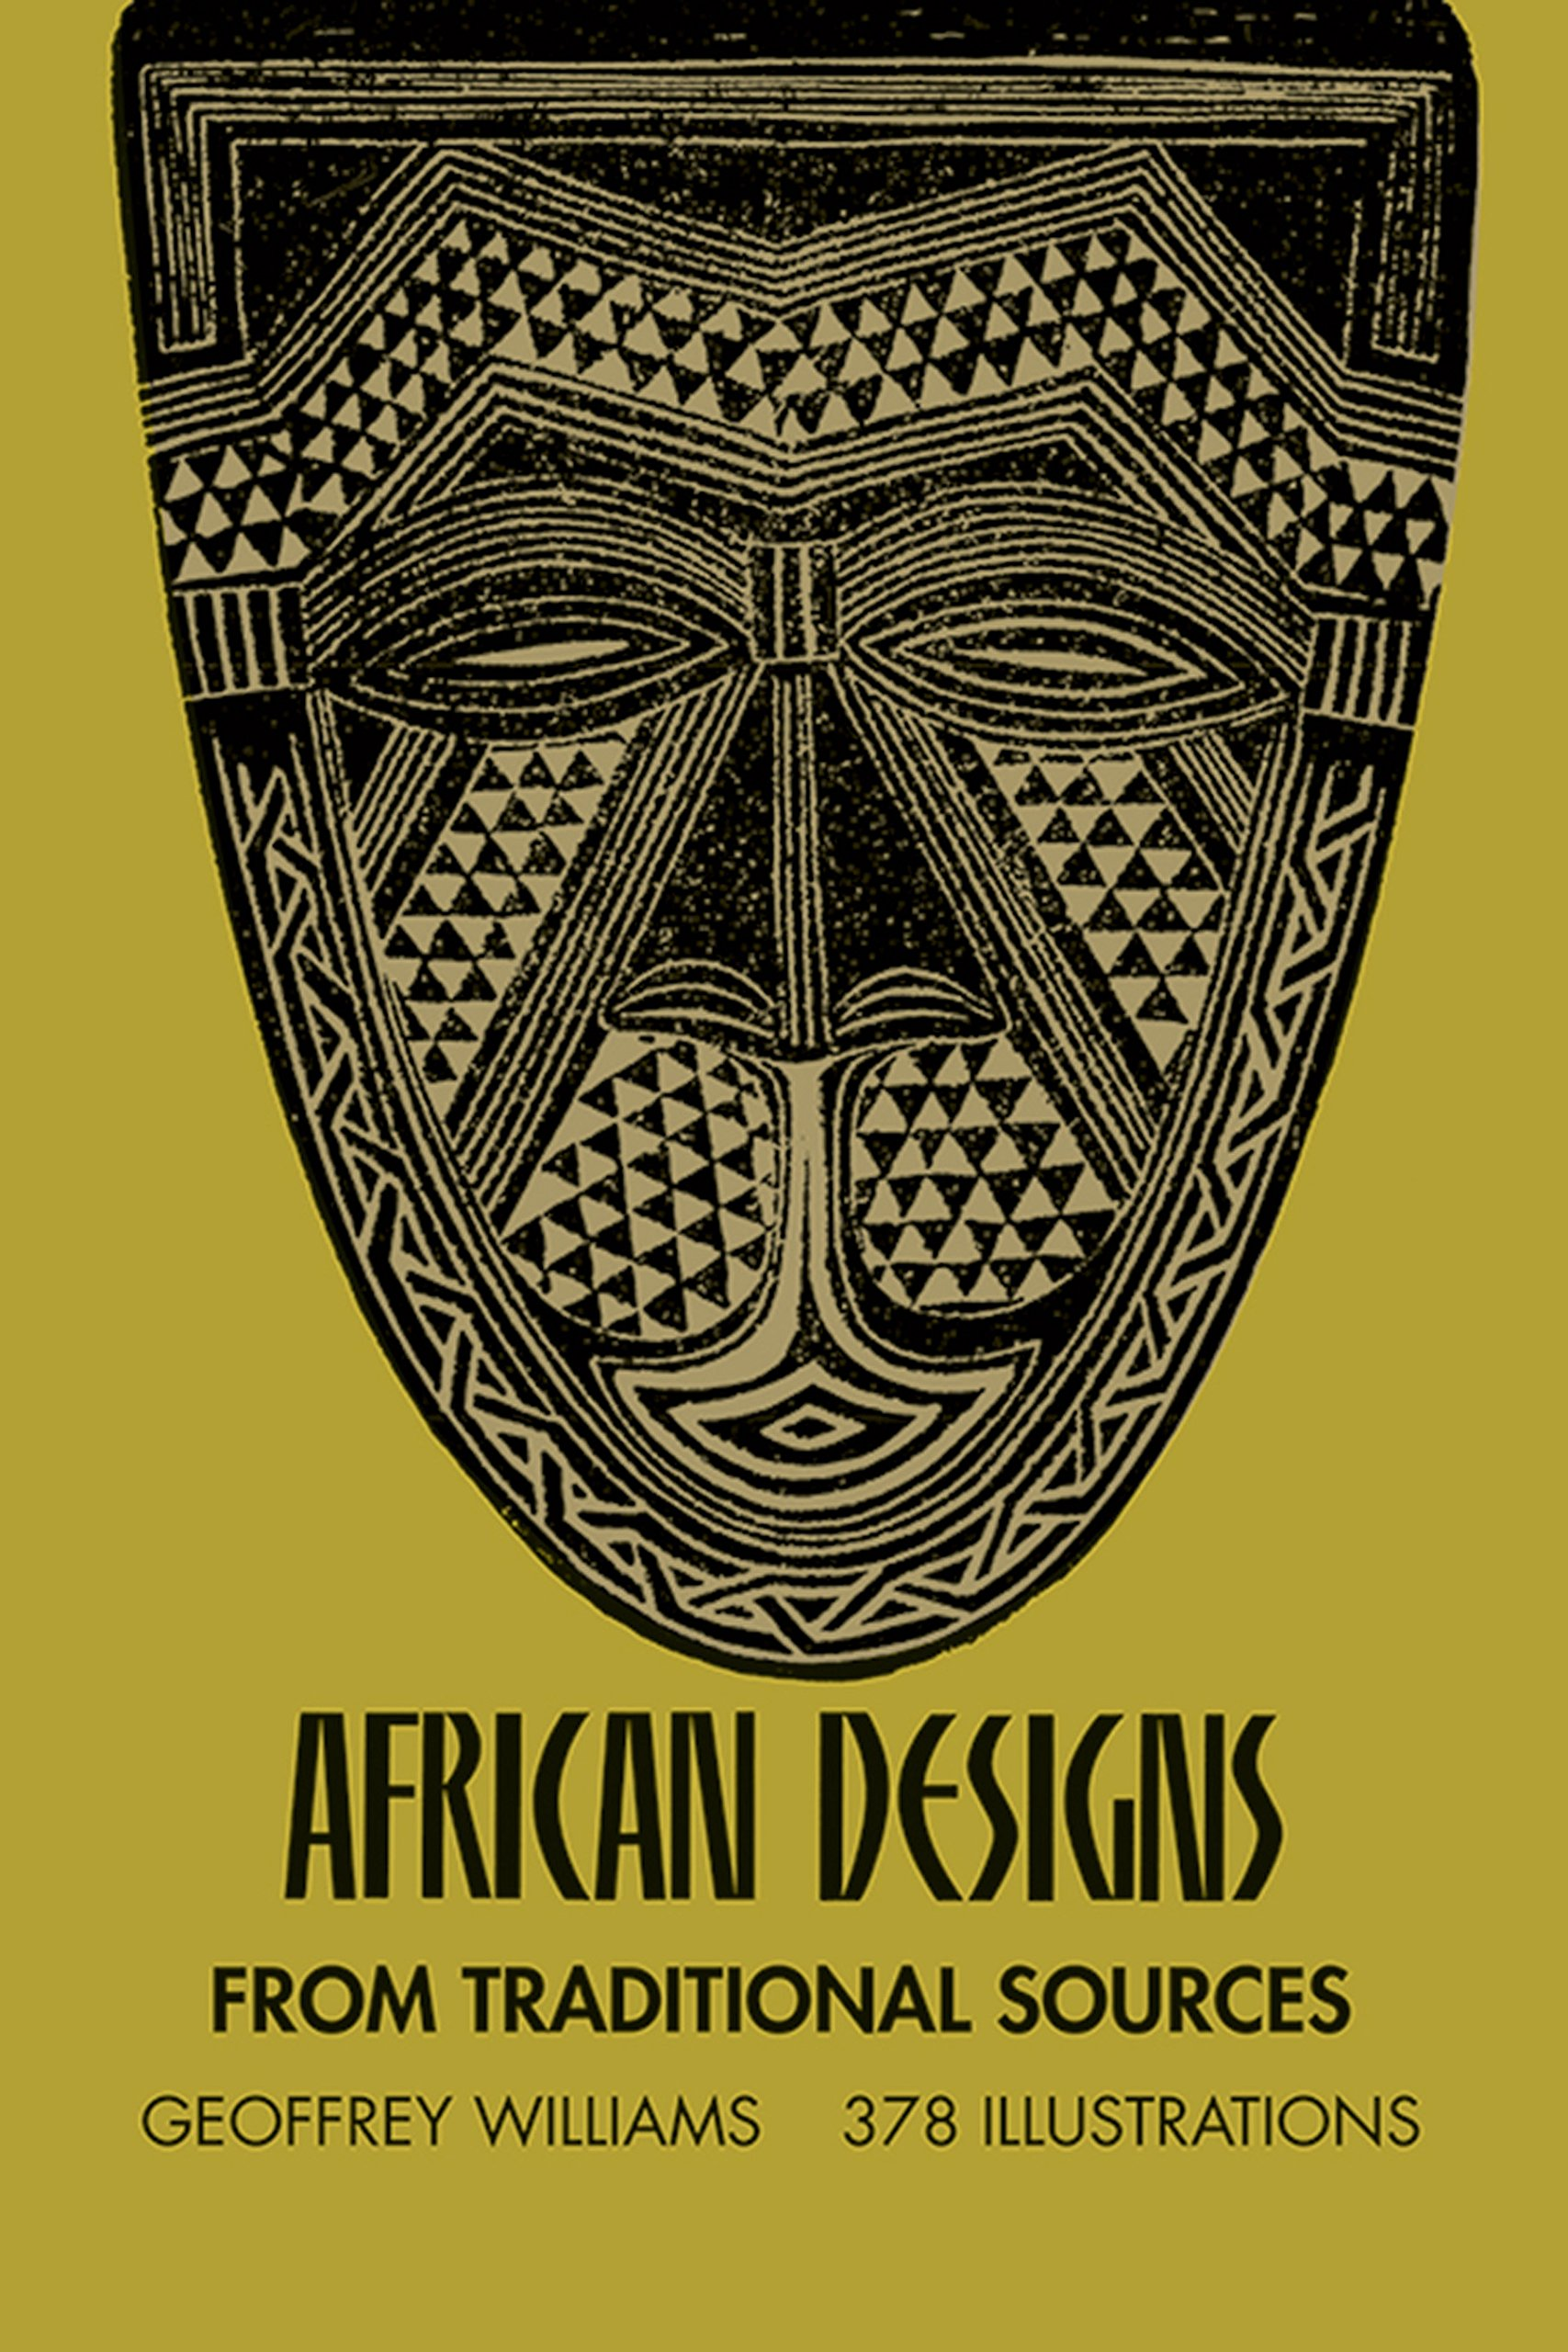 African Designs from Traditional Sources Paperback – June 1, 1971 Geoffrey Williams Dover Publications 0486227529 Decorative.